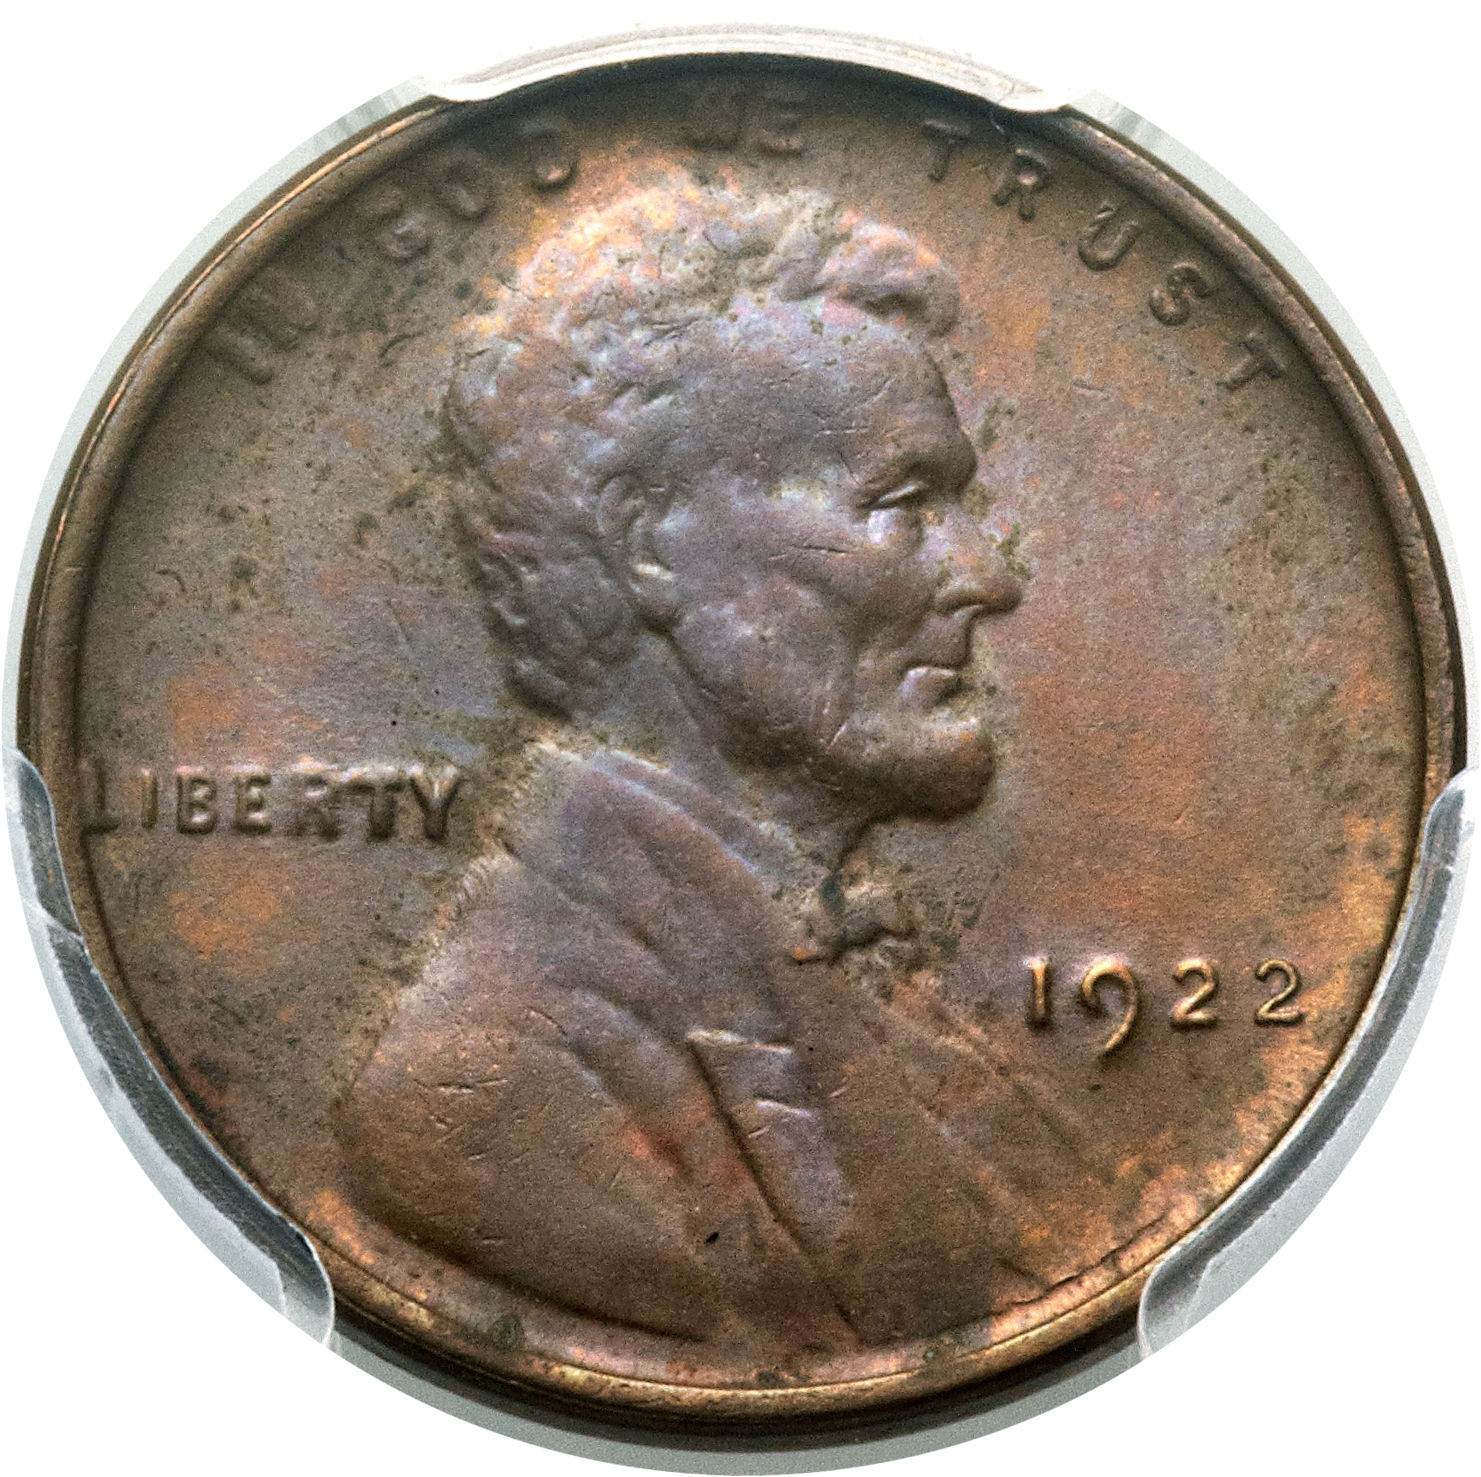 This brown Mint State 63 1922 No D, Strong Reverse cent, graded by the Professional Coin Grading Service, sold for $15, 275 at auction in June 2015. Image courtesy of Heritage Auctions.